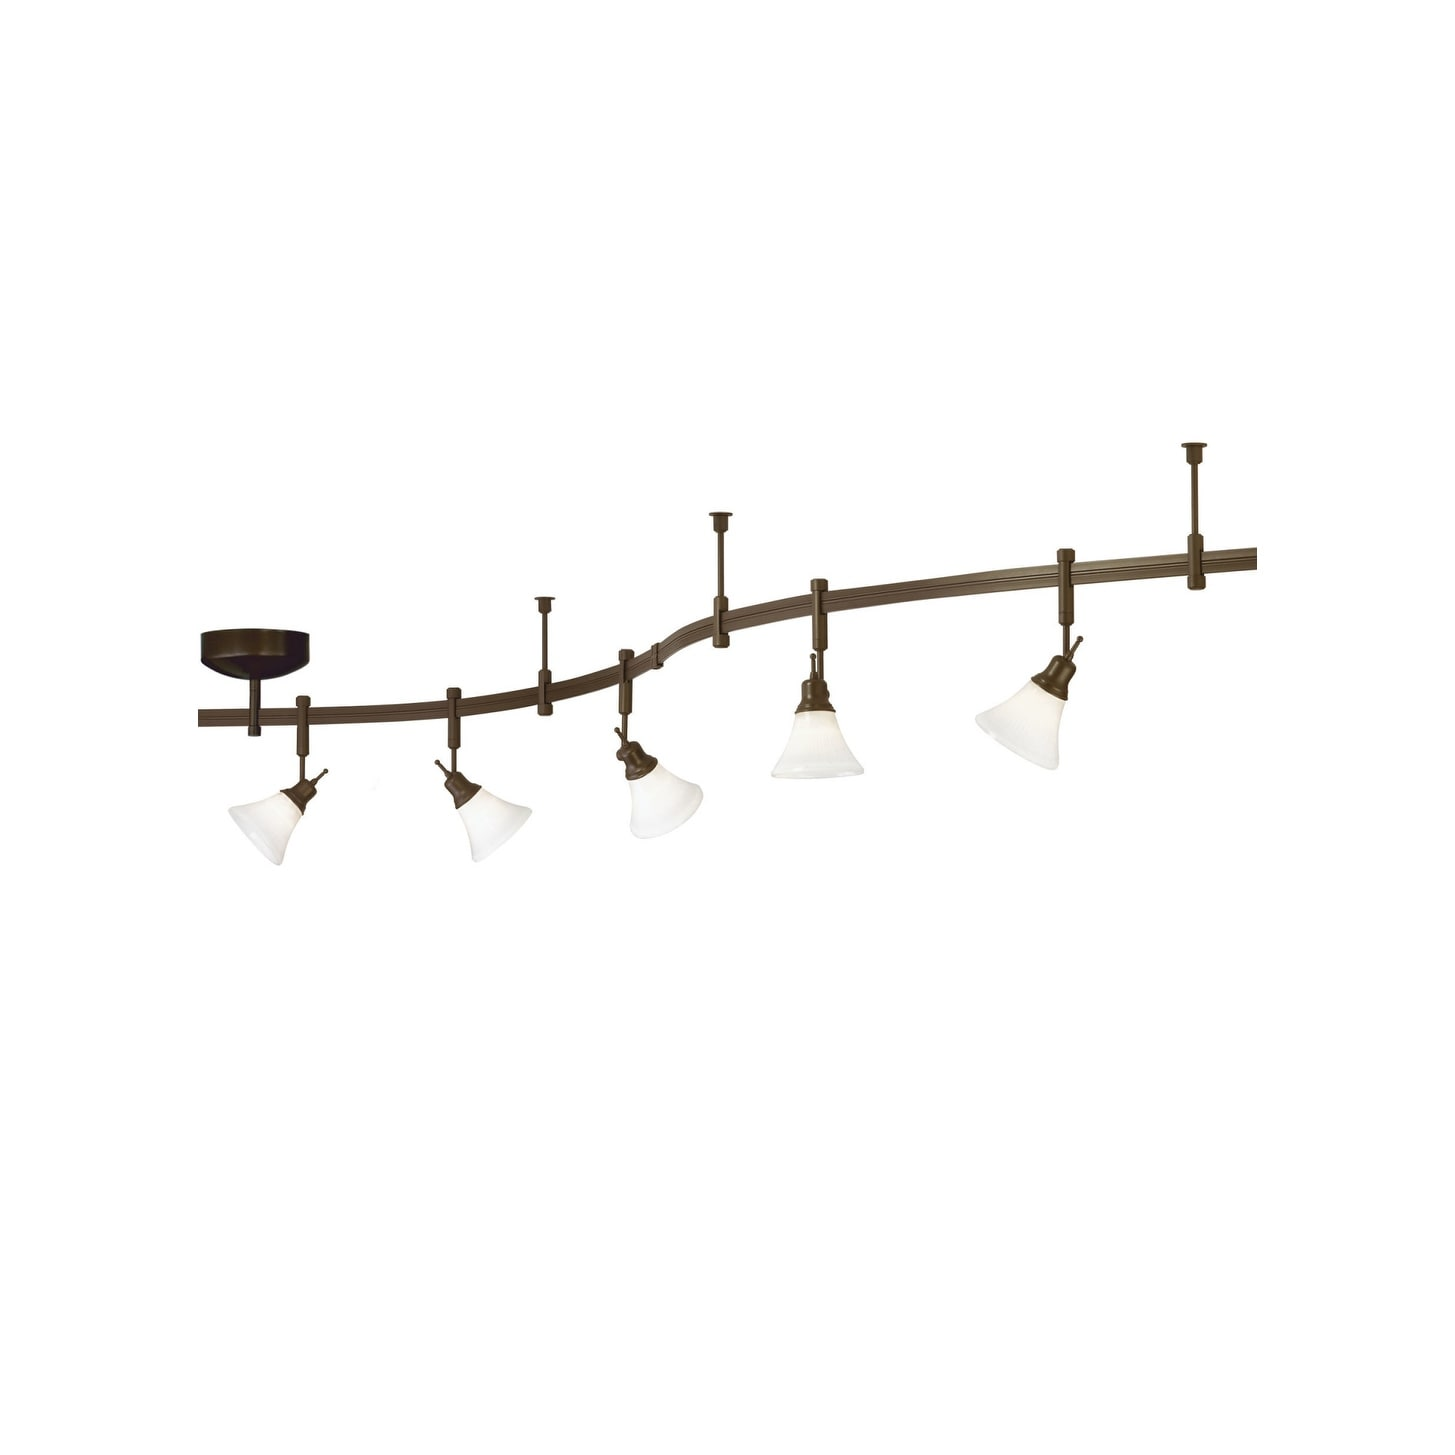 Tiella 5 Light Casual Rail Kit